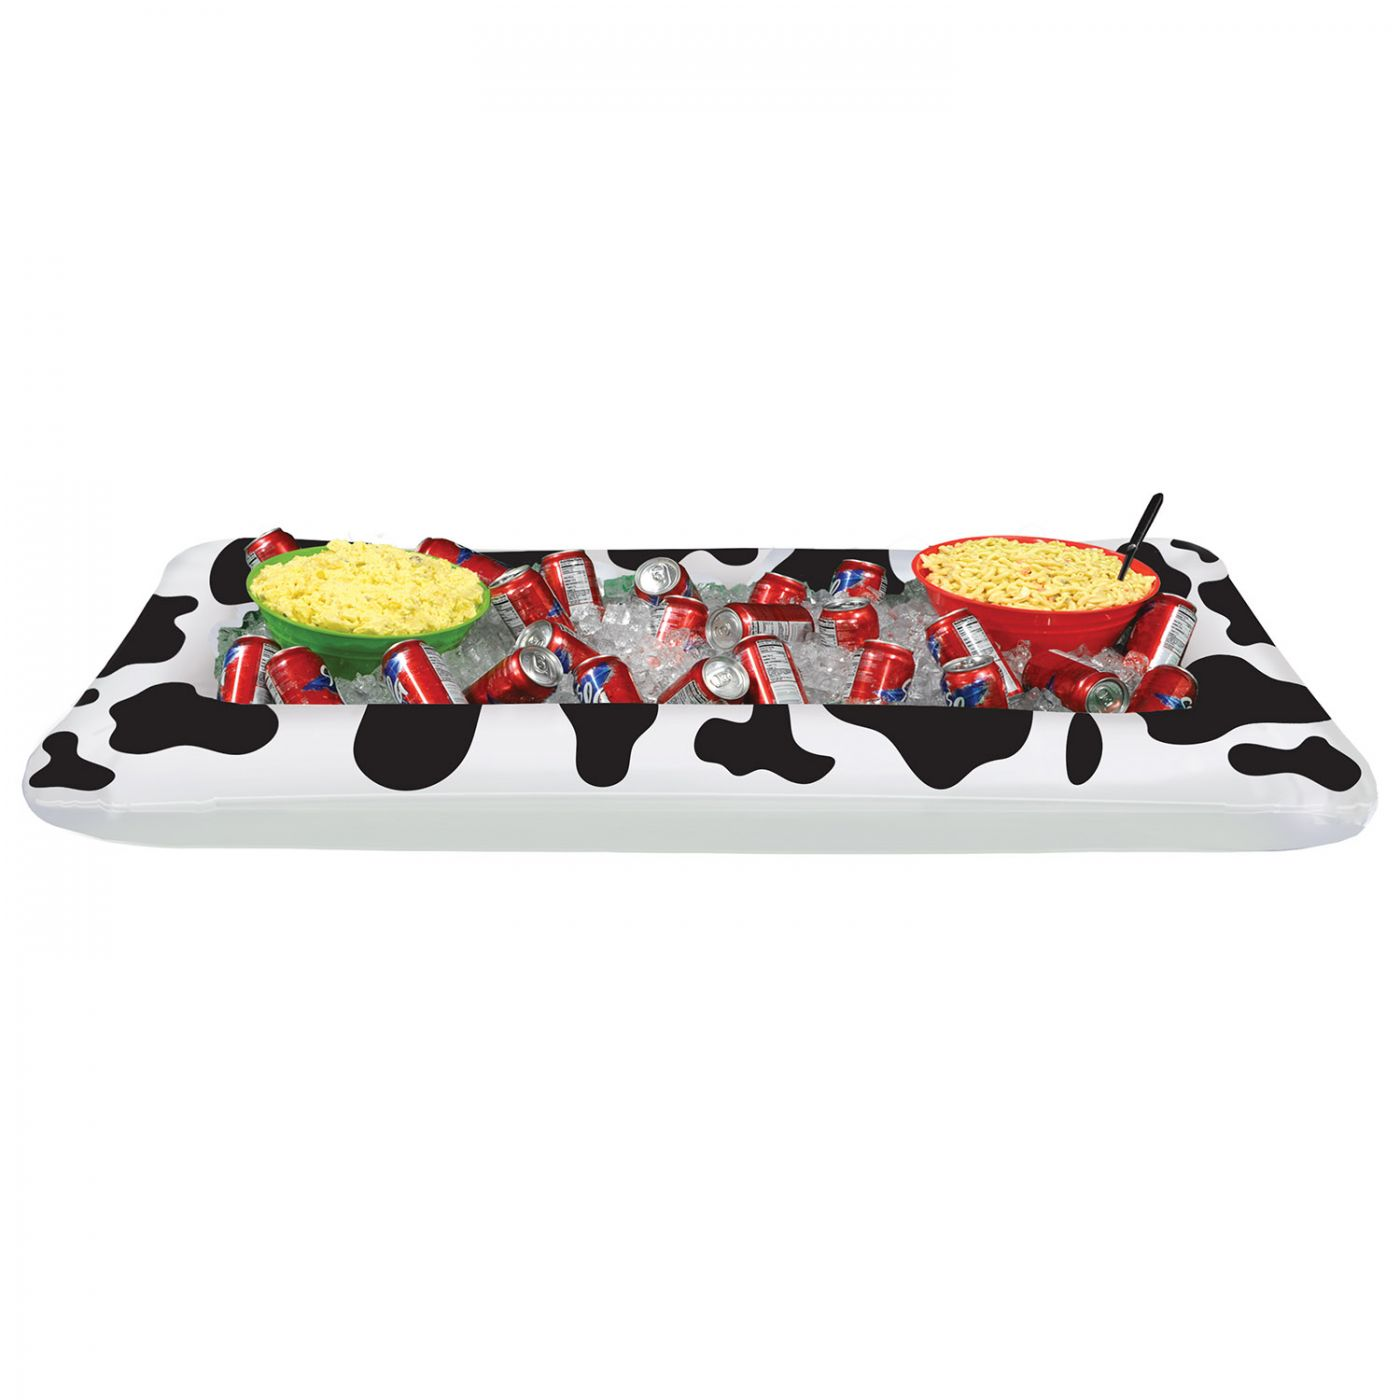 Inflatable Cow Print Buffet Cooler (6) image